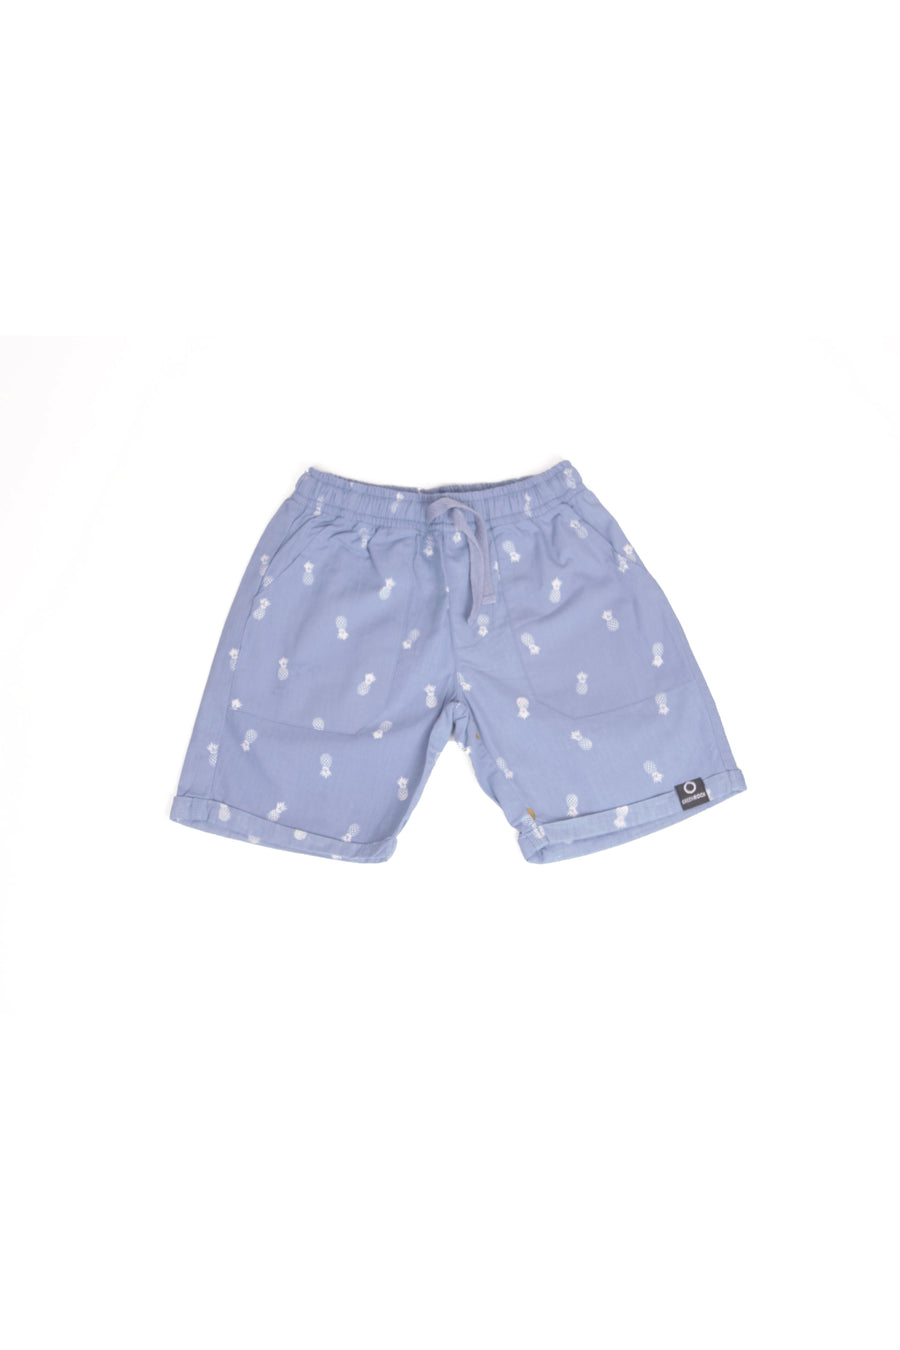 Short Kids Pineapple Medium Blue